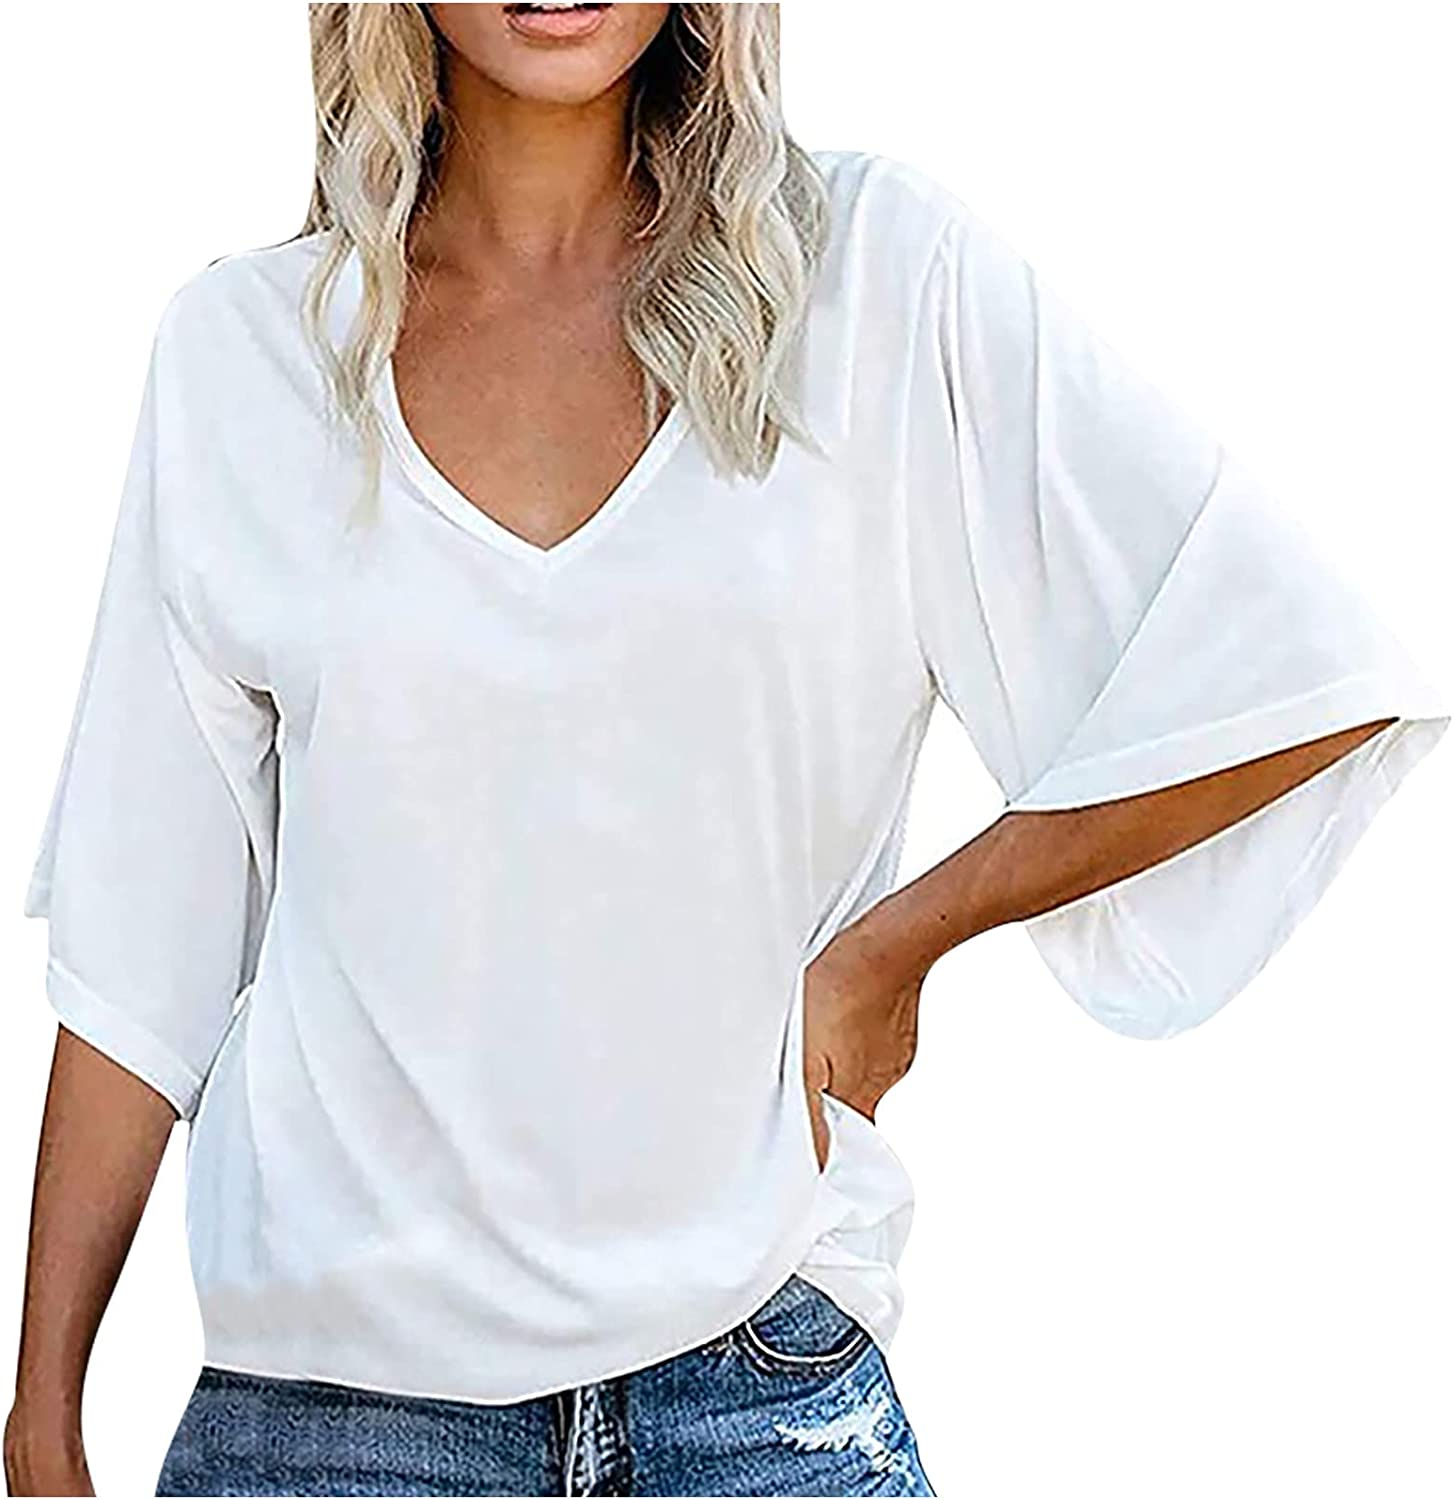 Women's Summer Tops Plus Size Casual Batwing 3/4 Sleeve V Neck Solid Color Vintage Tuinc Top Shirts T-Shirt Blouse Tee